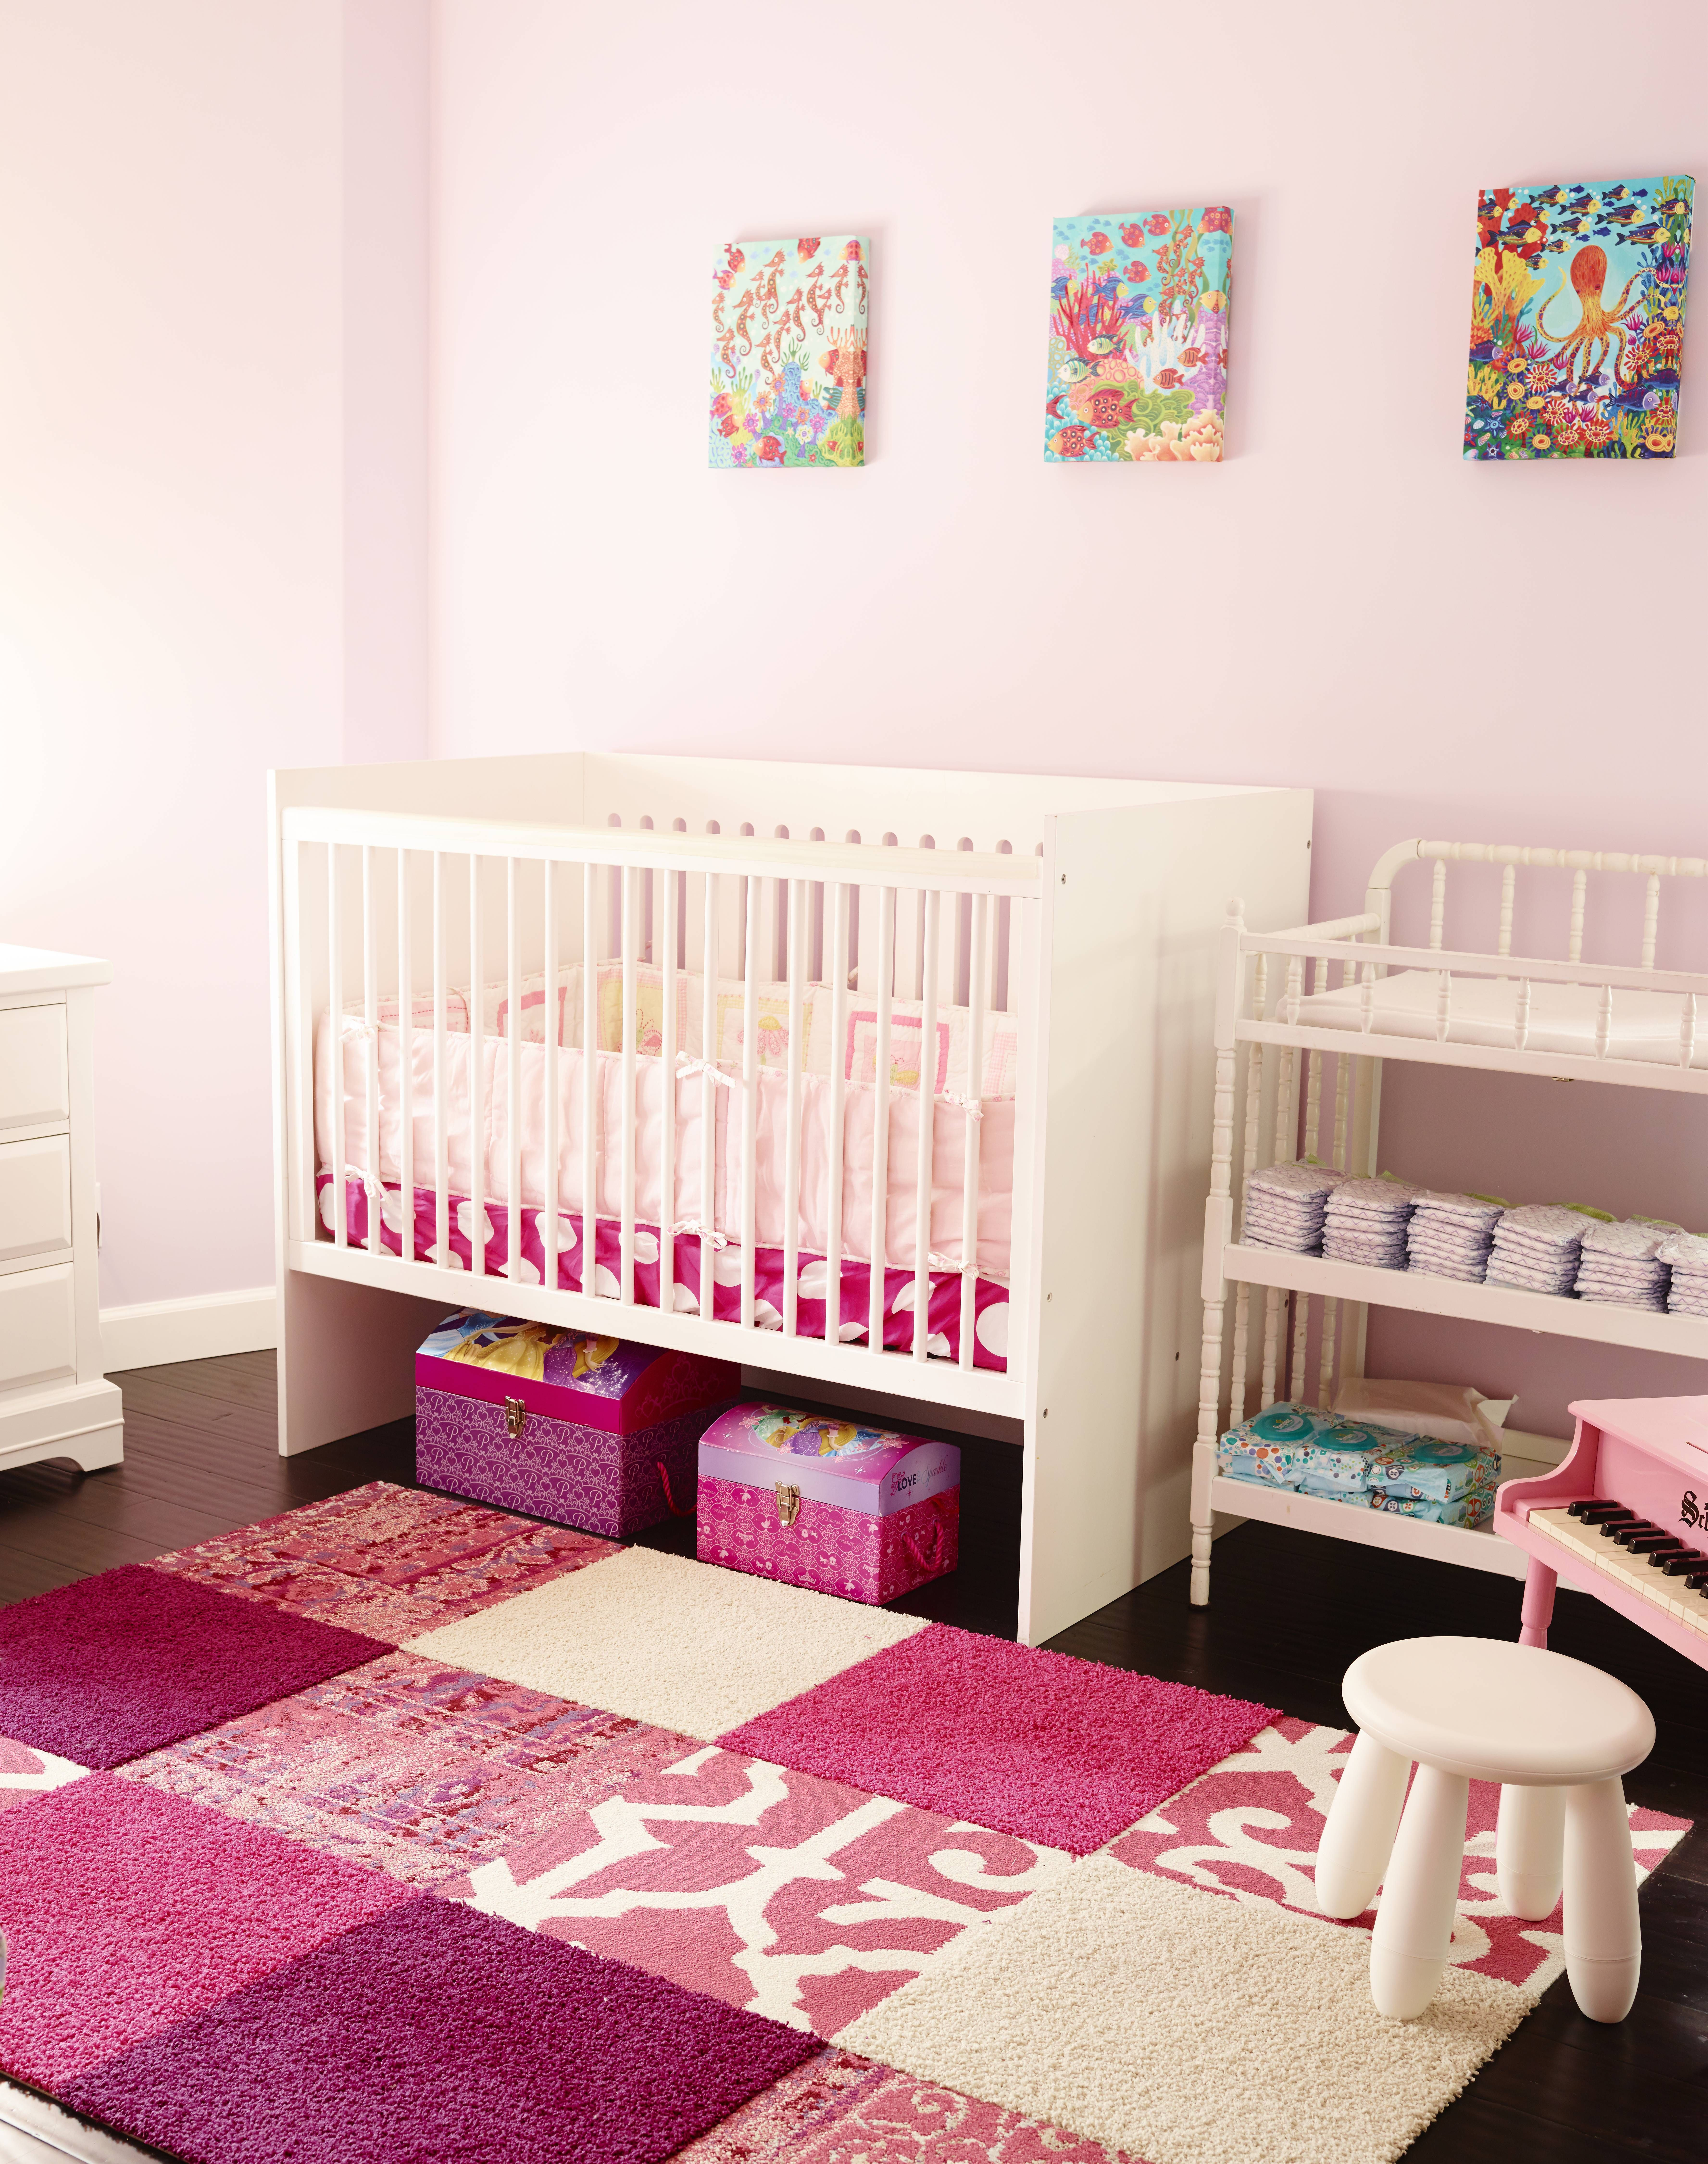 Baby nursery with FLOR carpet tiles for ecobungalowla by Robin